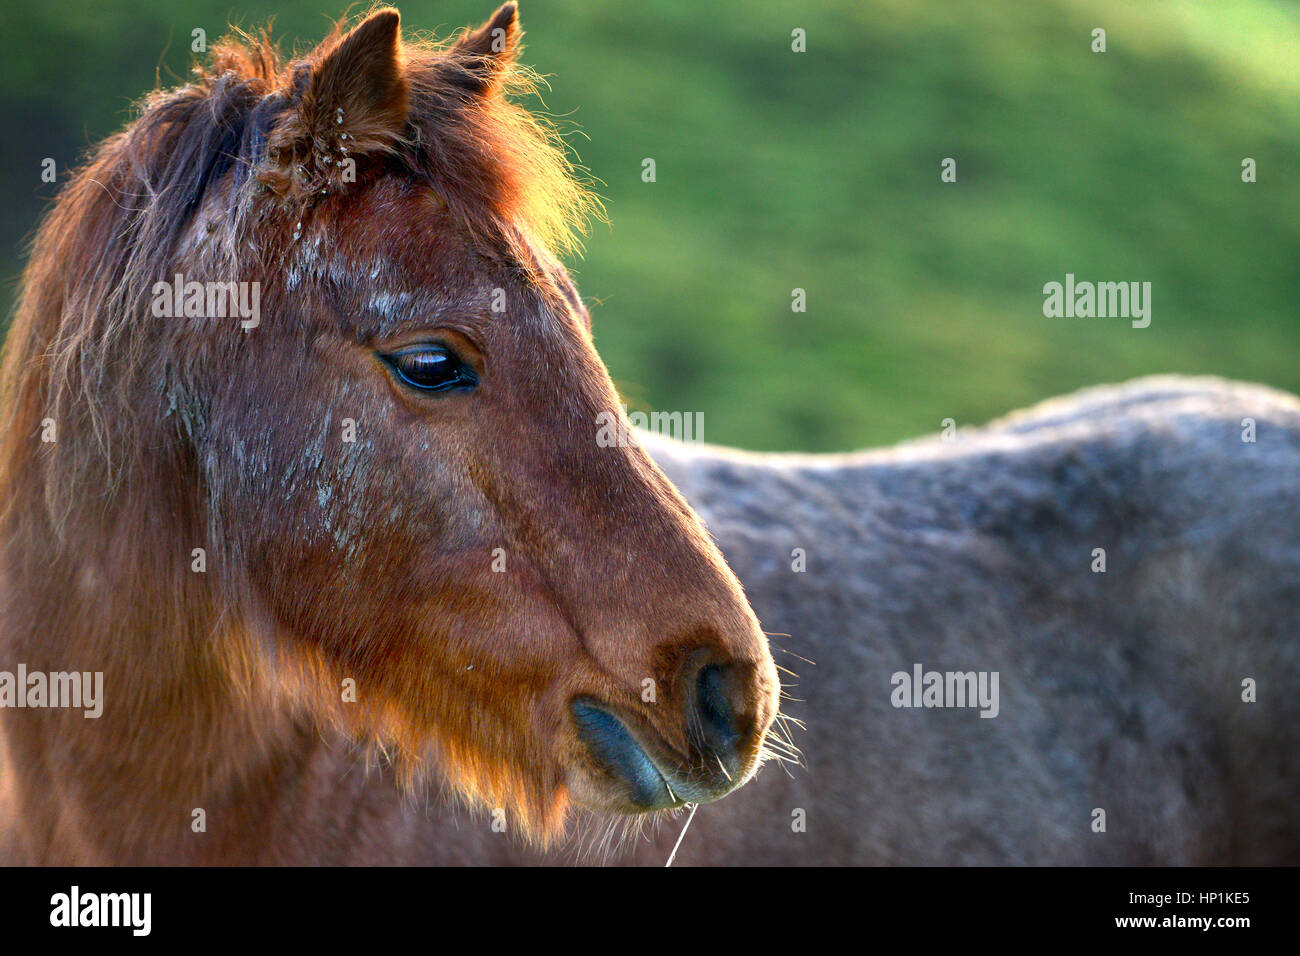 Ripe, East Sussex, UK. 17th February 2017. UK Weather. A horse enjoys warm evening sun after a beautiful day in - Stock Image